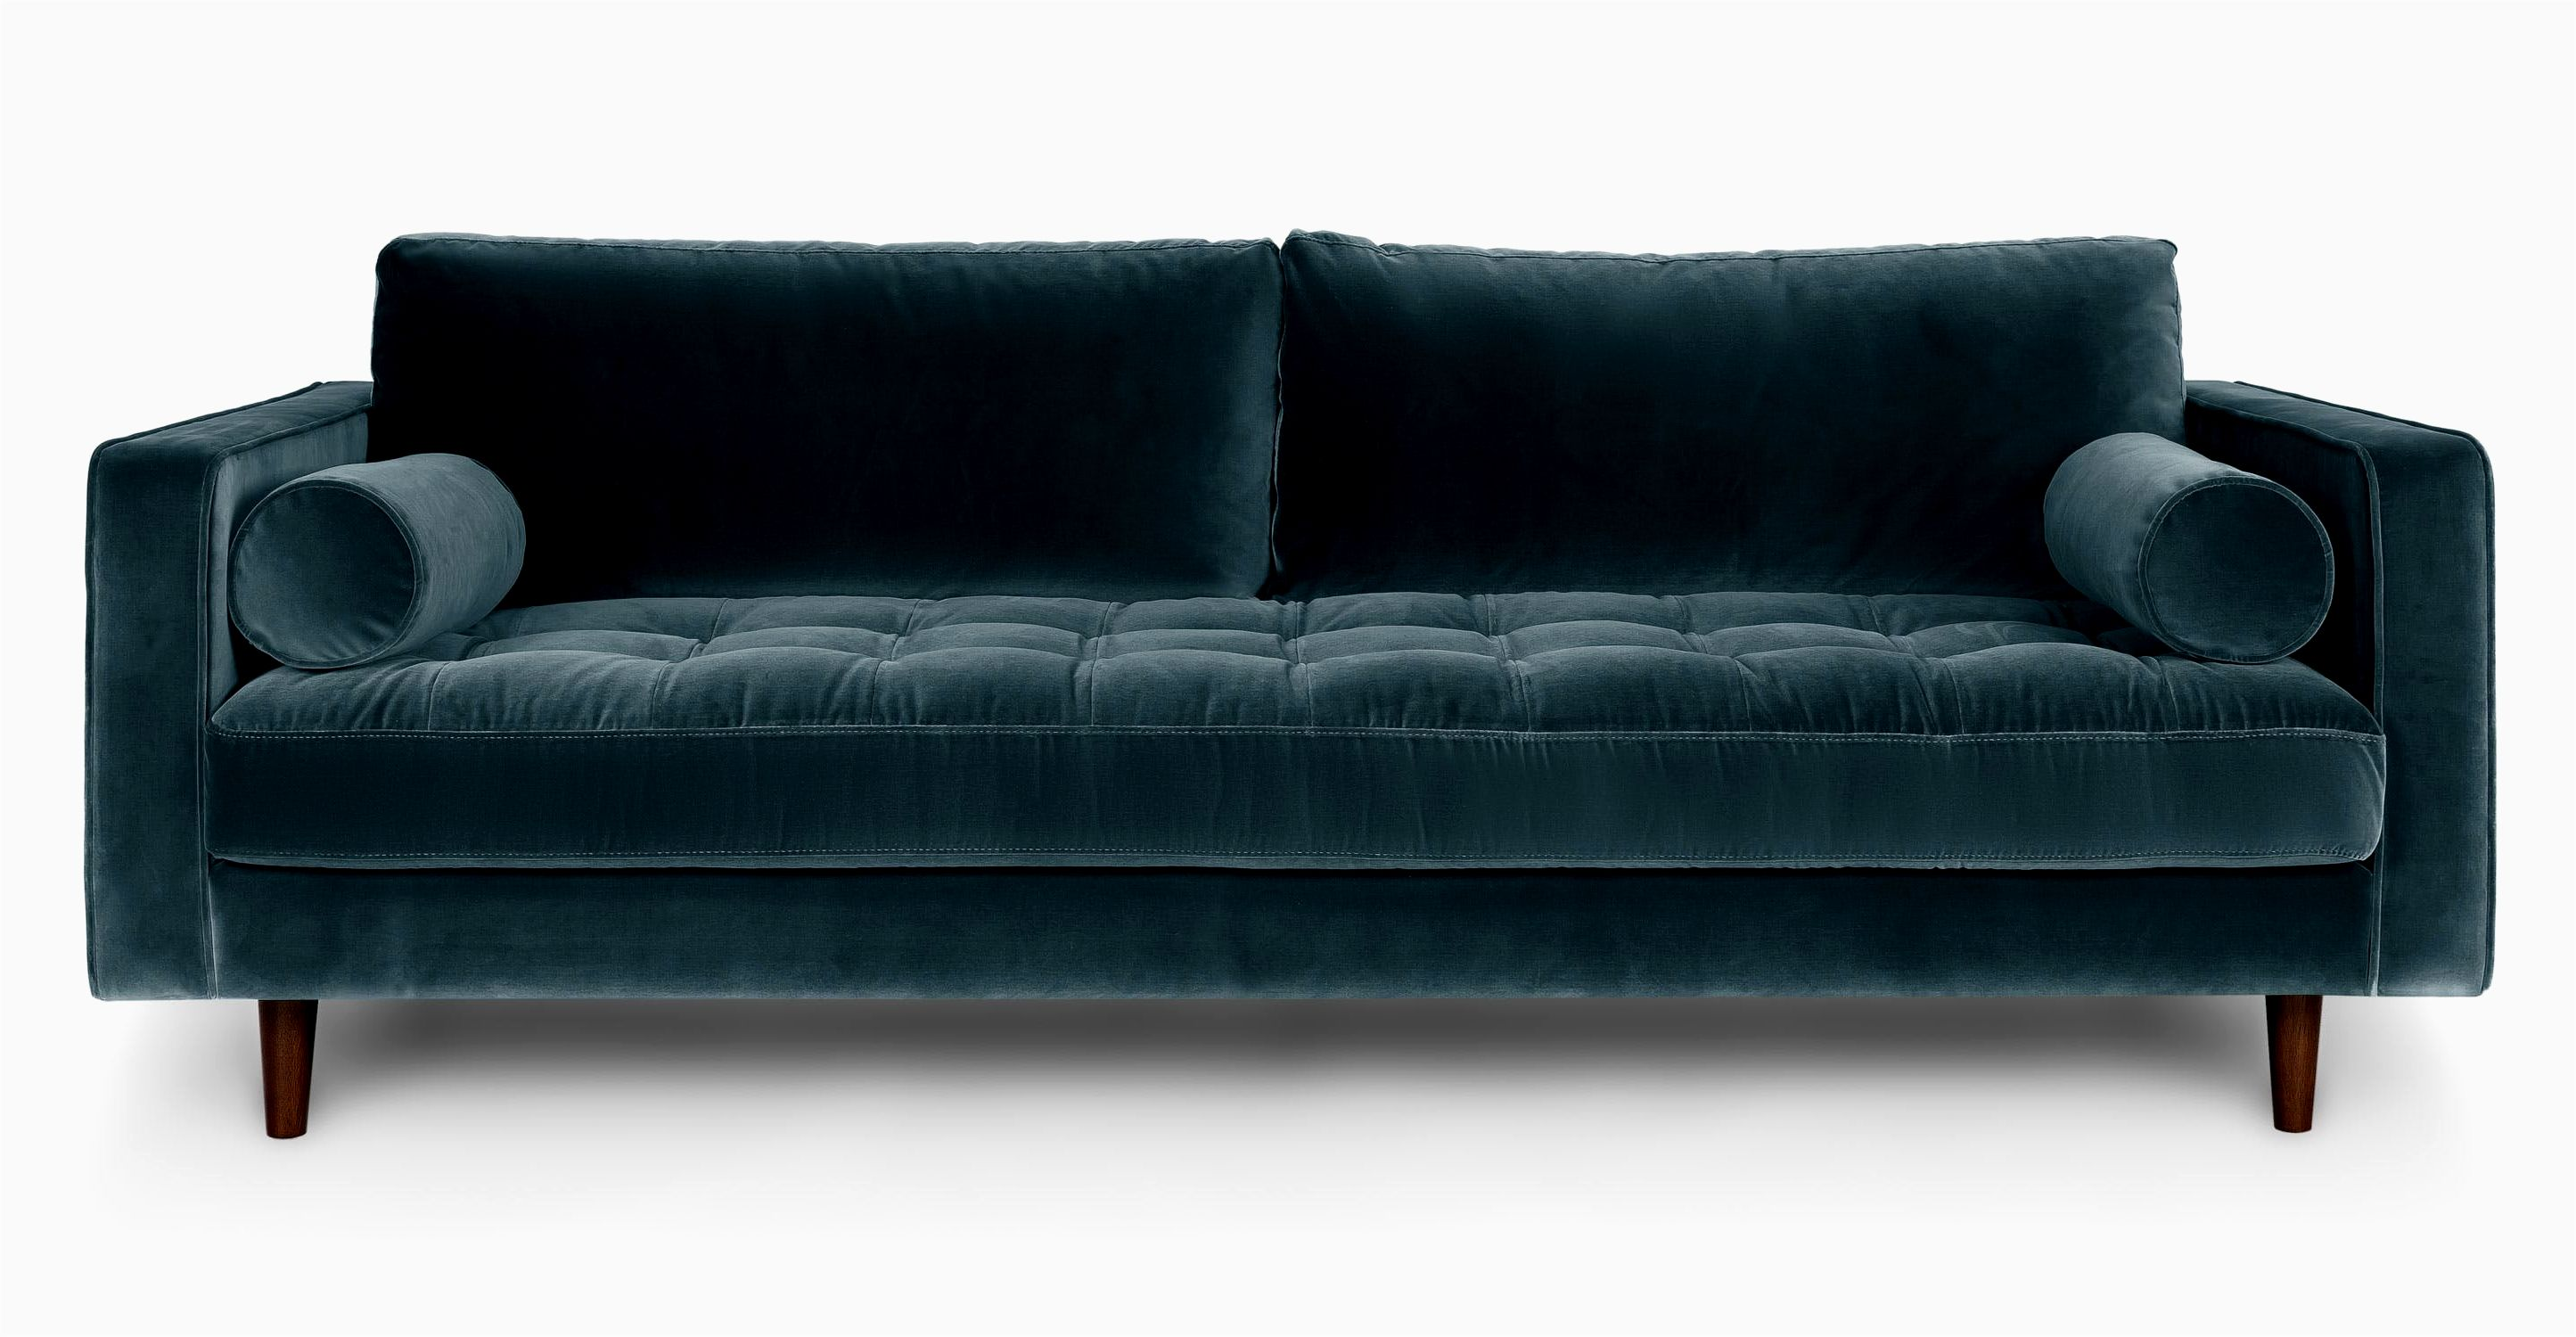 inspirational tufted sleeper sofa photo-Unique Tufted Sleeper sofa Collection